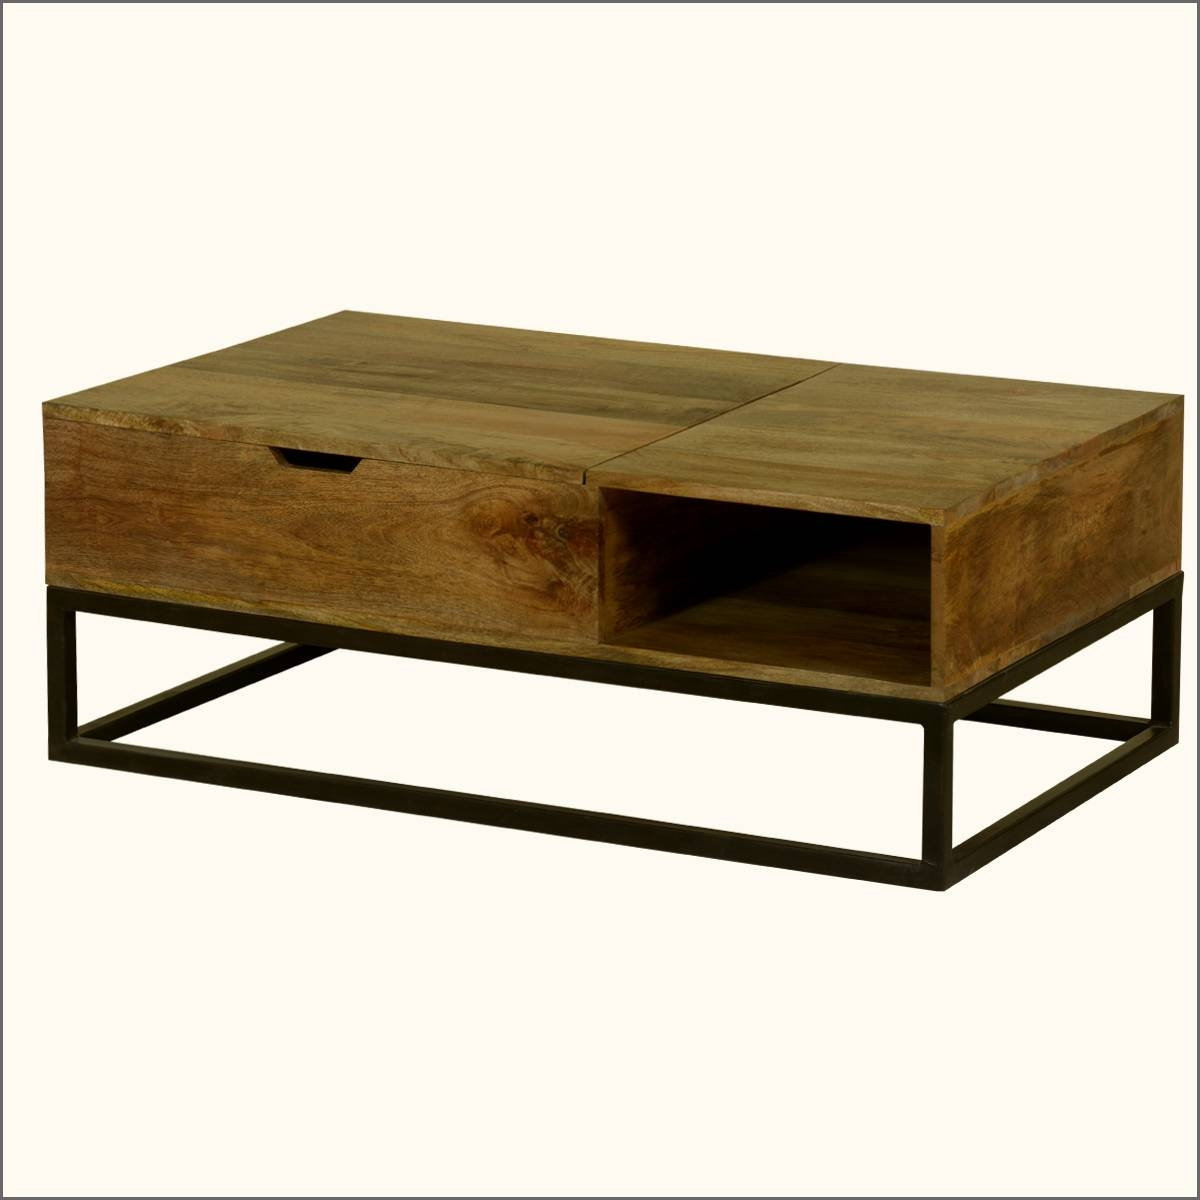 Nice Coffee Tables Rustic Wood With Coffee Table Rustic Coffee with Mango Wood Coffee Tables (Image 20 of 30)